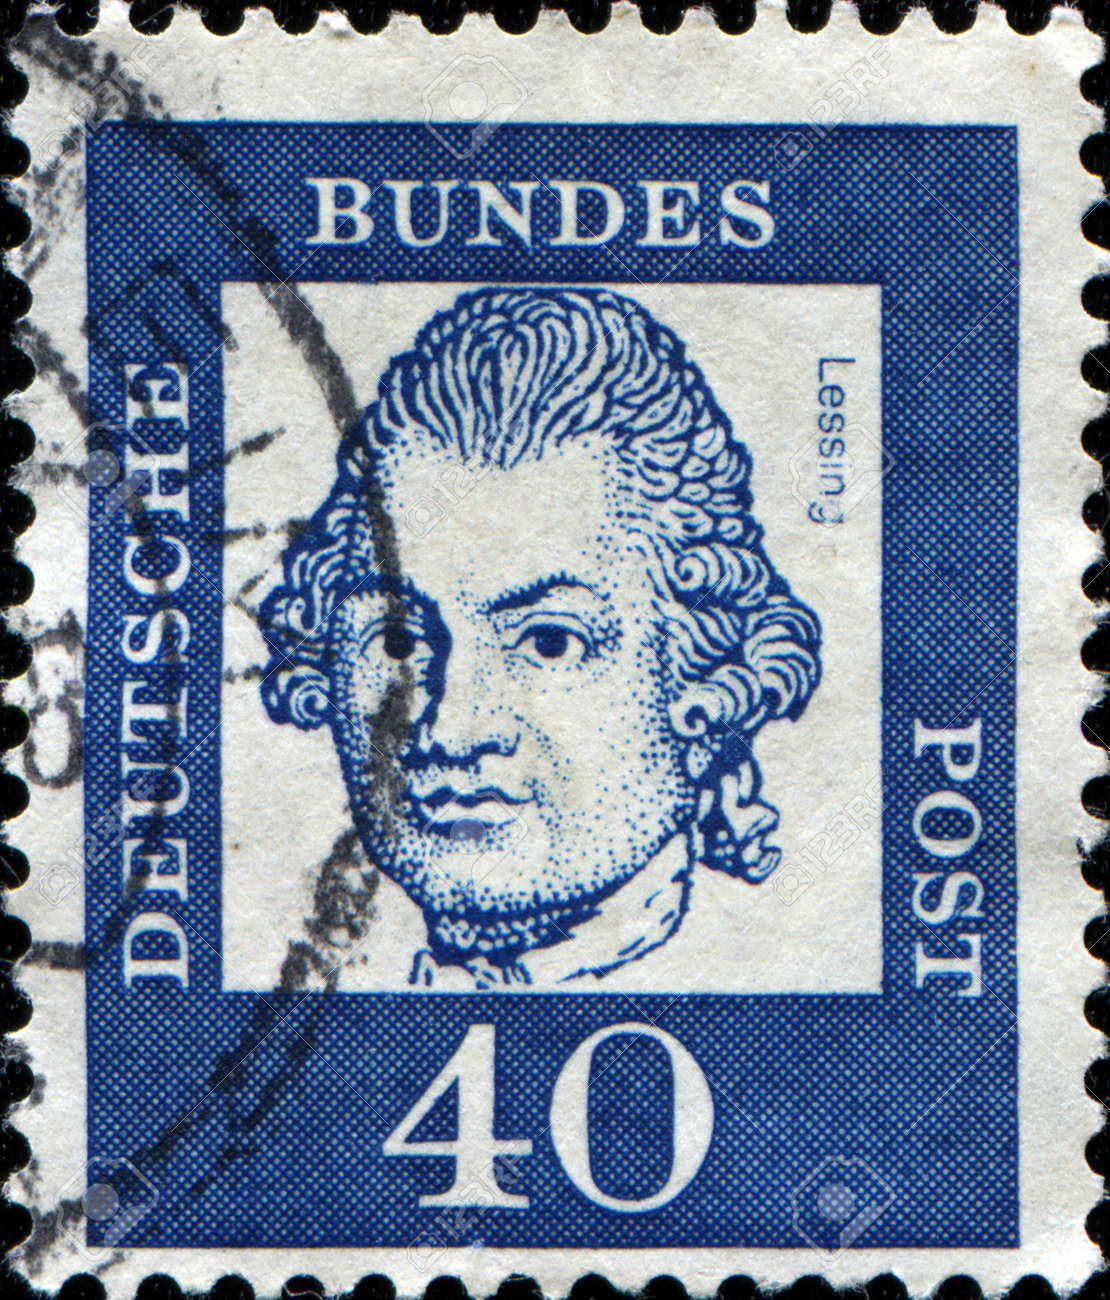 GERMANY - CIRCA 1961  A stamp printed in Germany shows Gotthold Ephraim Lessing, circa 1961  Stock Photo - 14200602